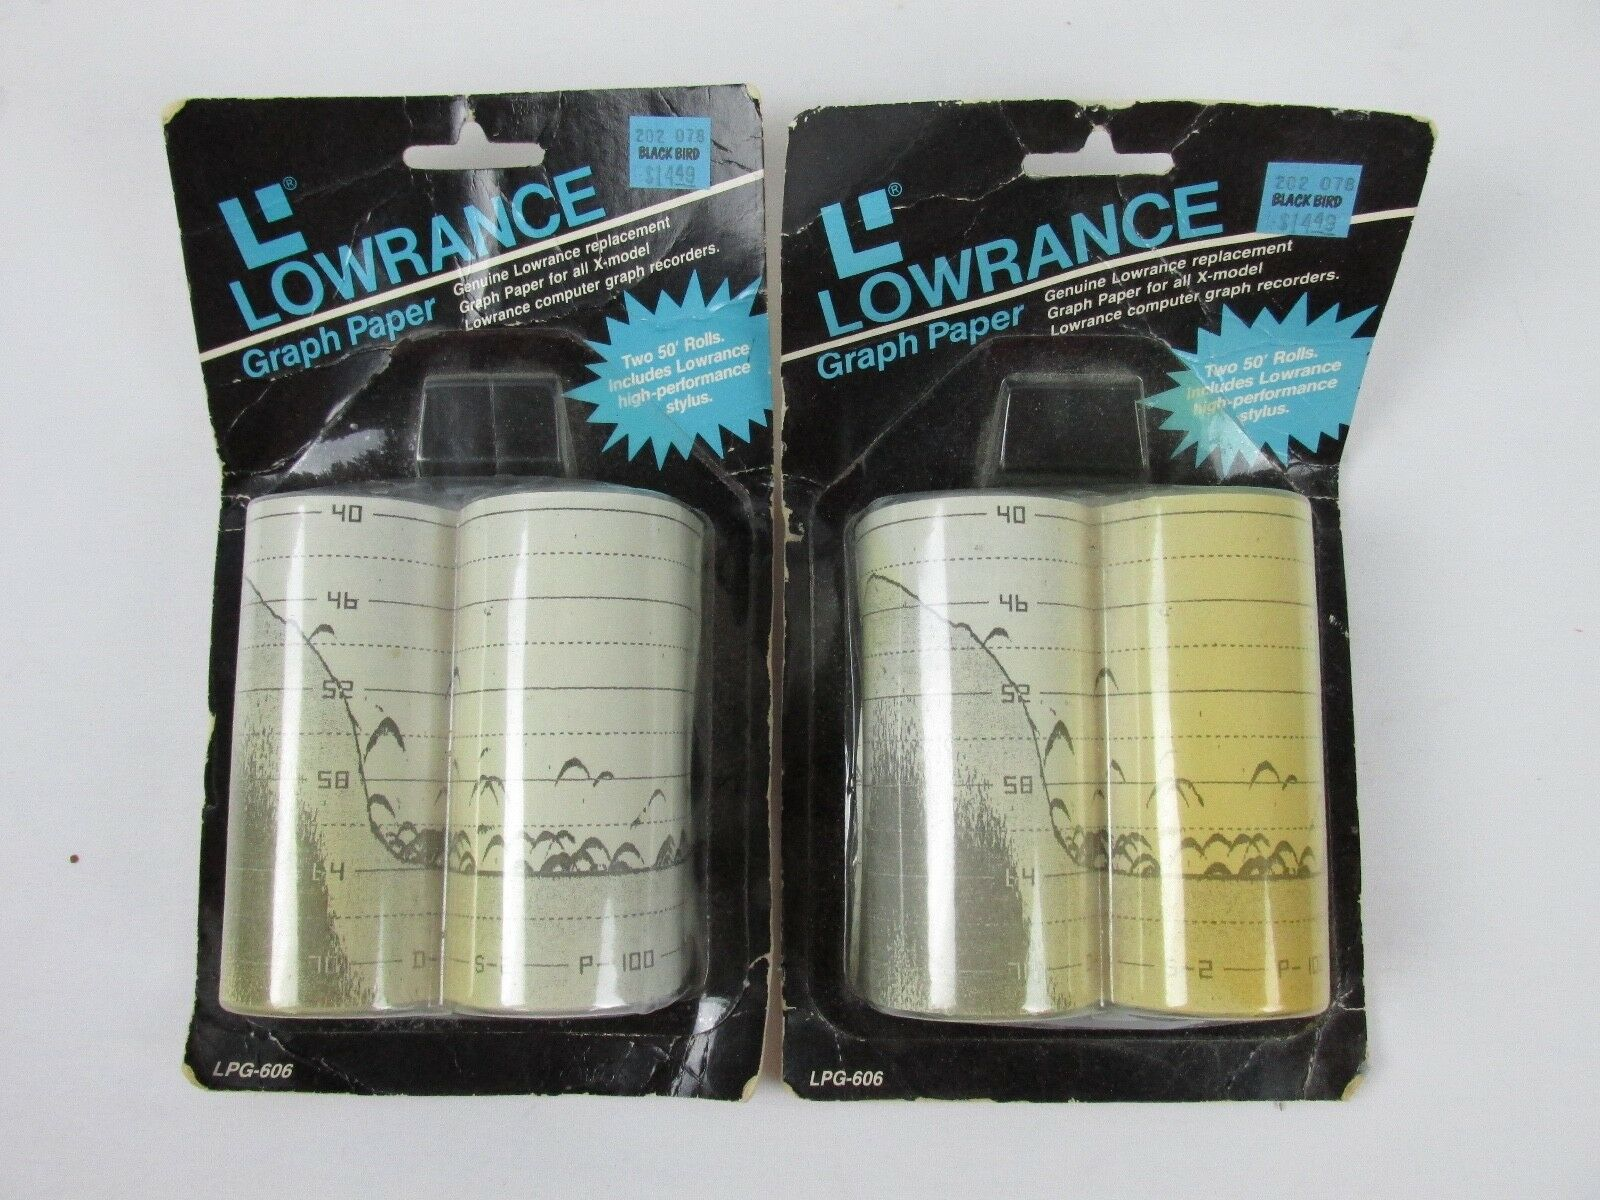 Lowrance Fish Finder LPG-606 Graph Paper w  Stylus 50' Graphing Fishing 4 Lot